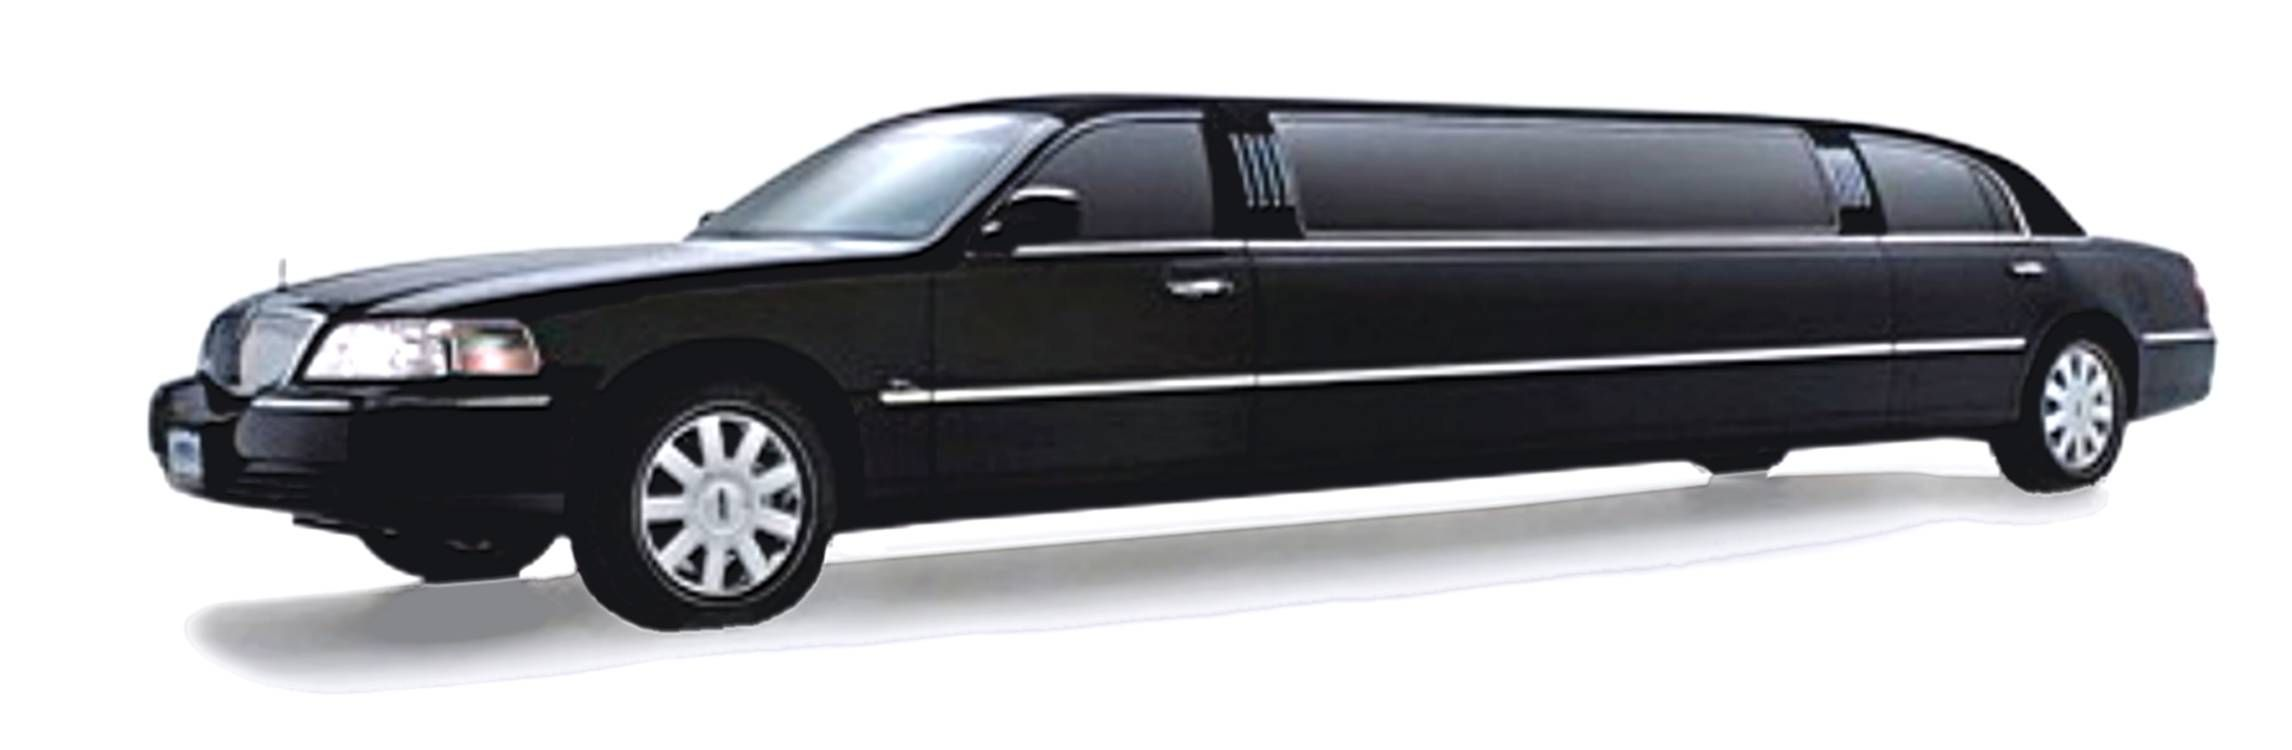 Airport Transfers Houston And Limousine Rental Houston Limo Limousine Limousine Rental